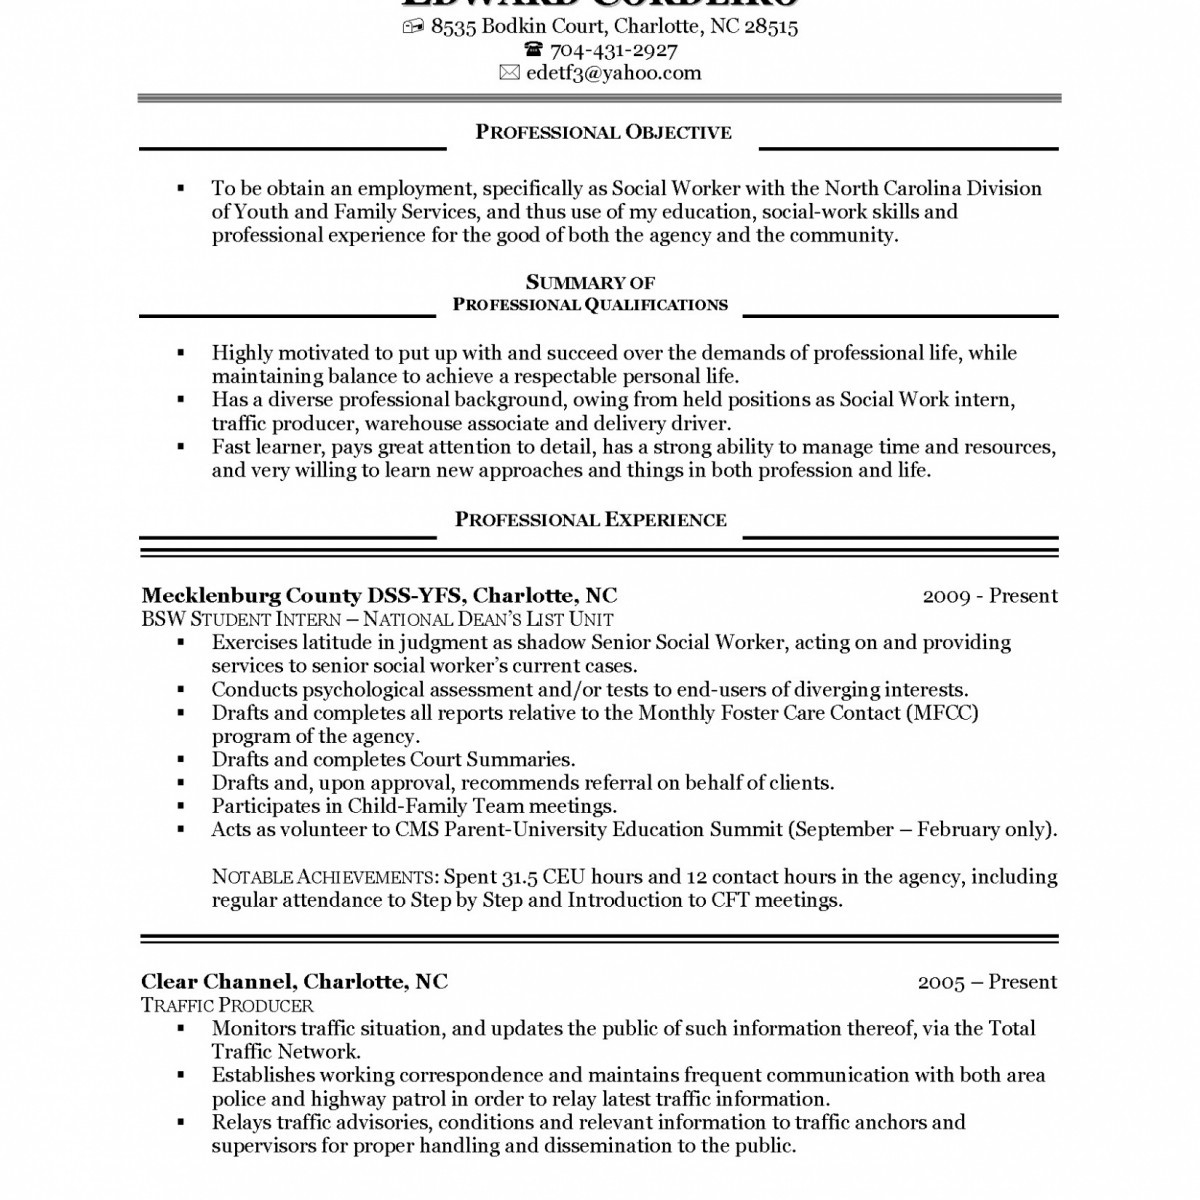 Resume Background Summary - Sample Summary for Resume Best Beautiful American Resume Sample